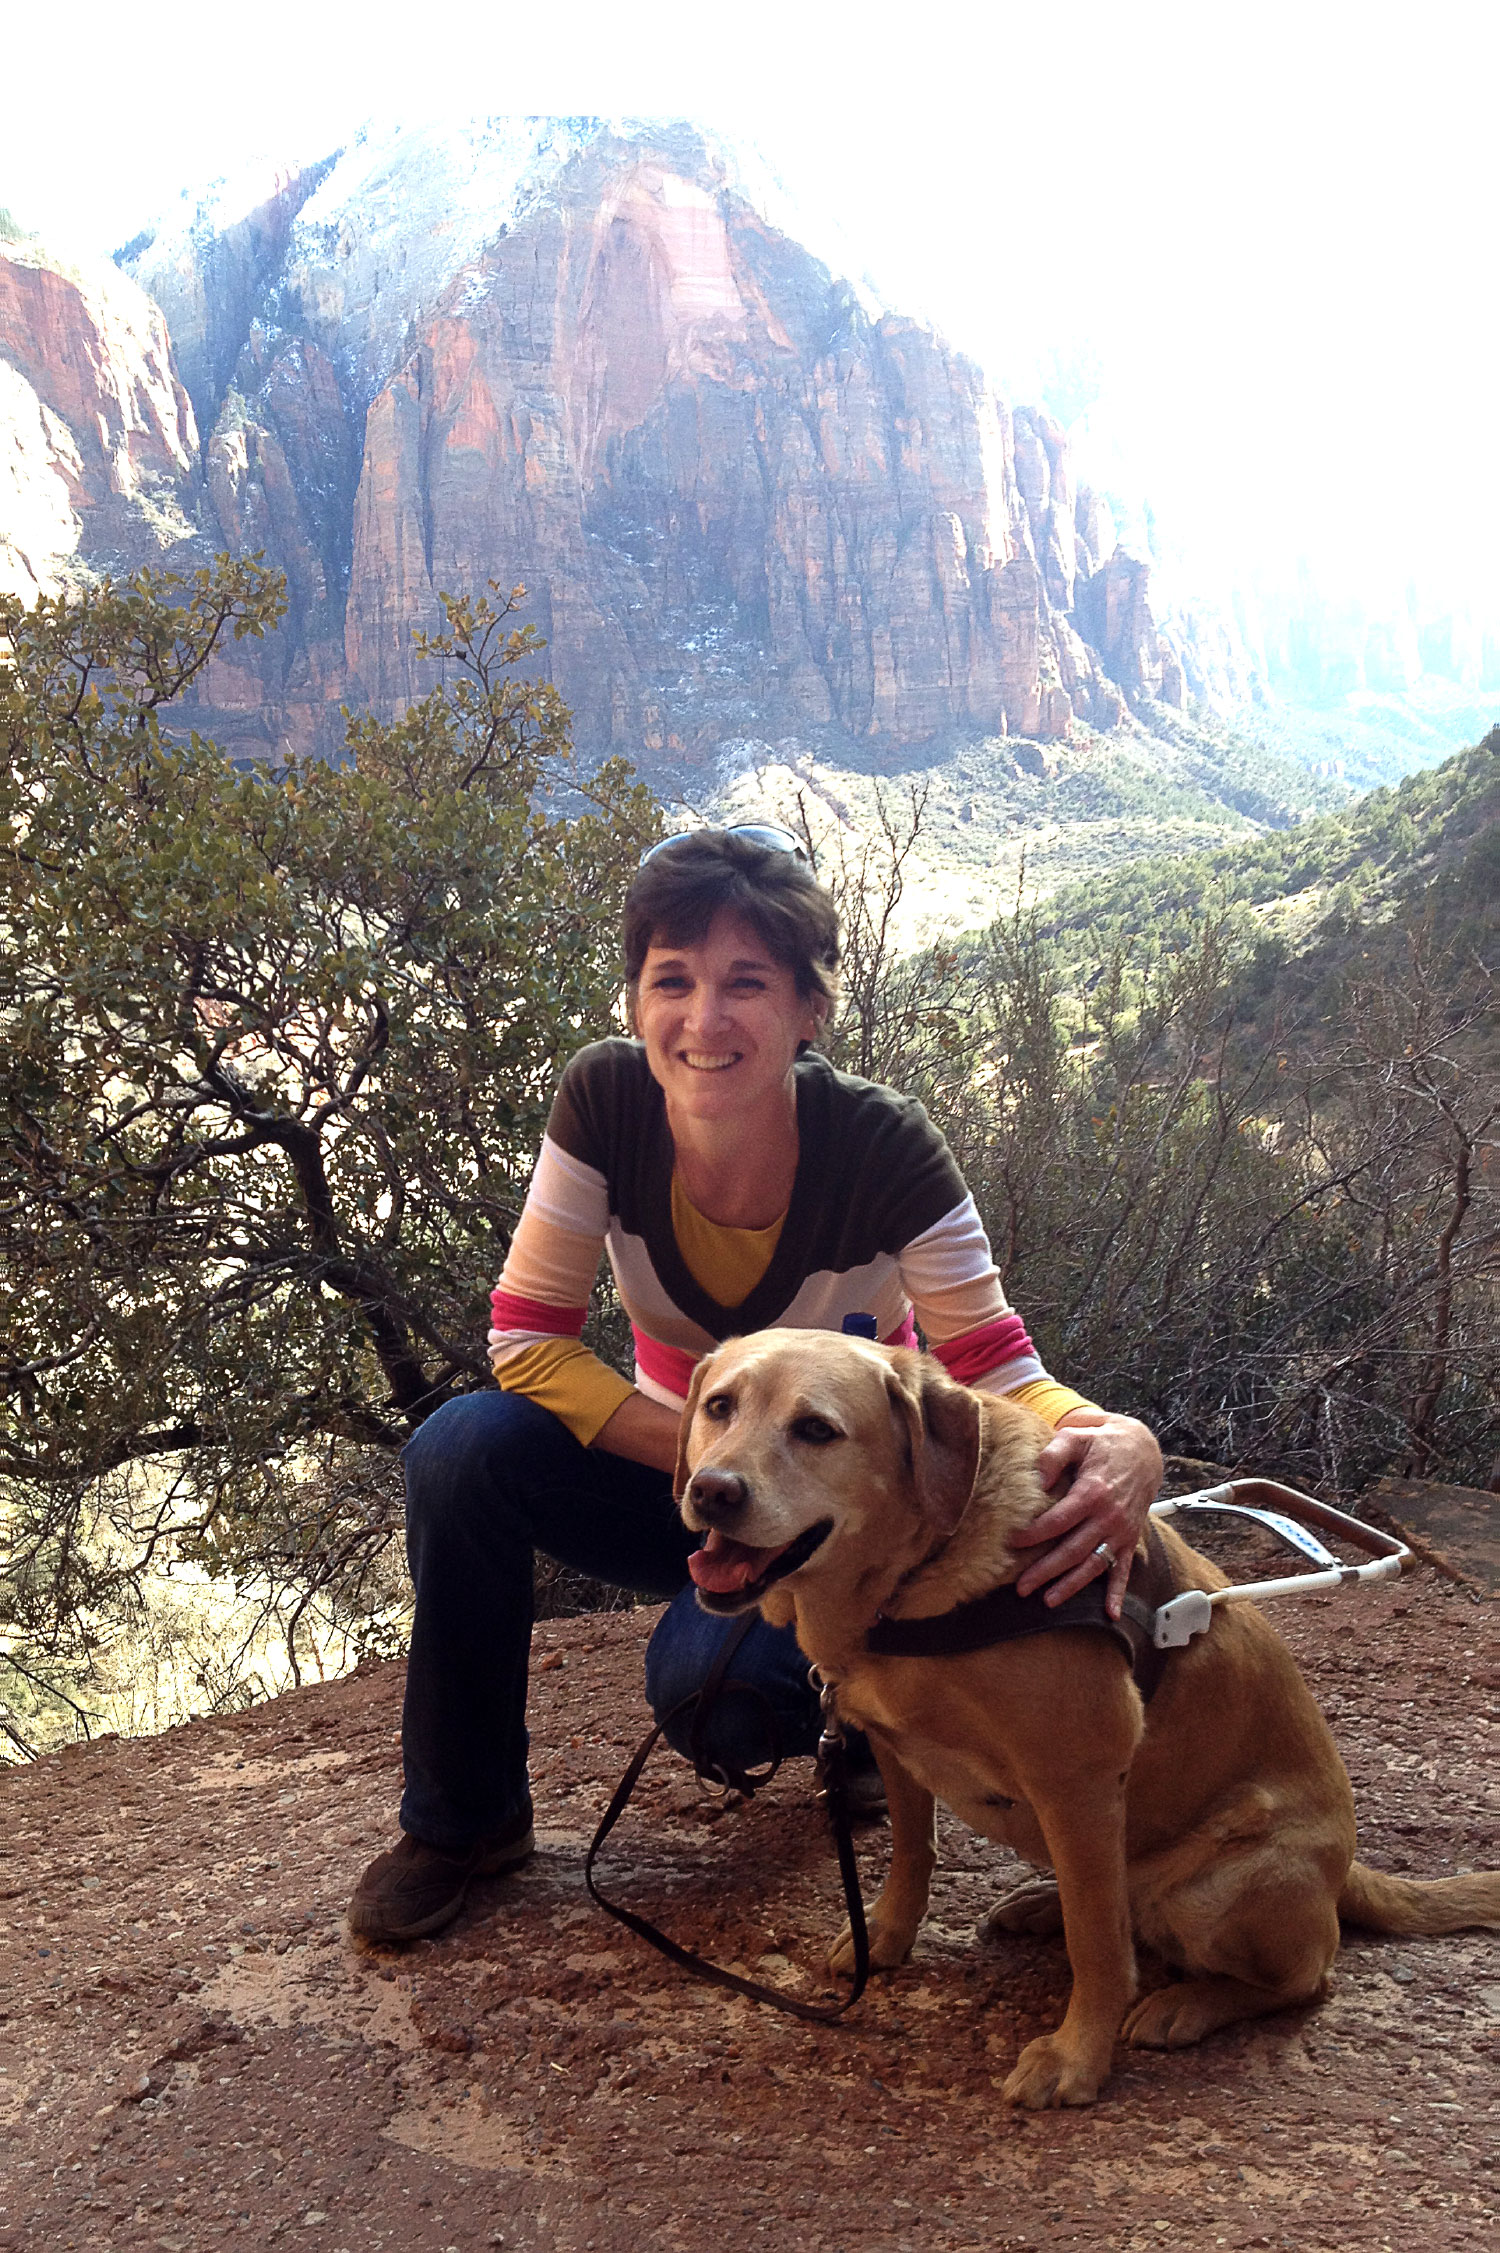 Becky and her second guide dog, Cricket, hiking Angels Landing at Zion National Park, in Utah.